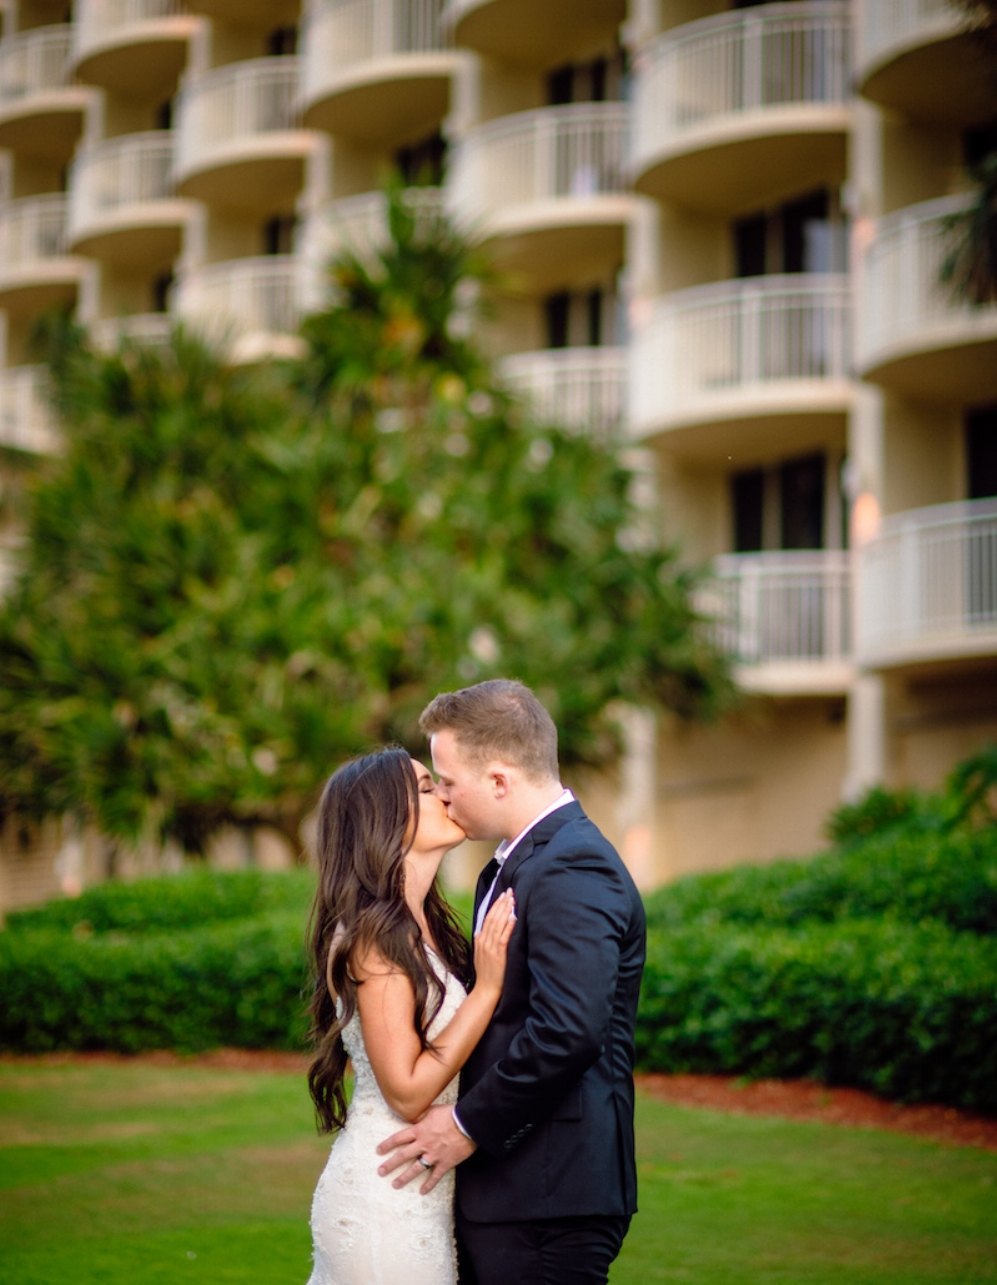 JW Marriott Marco Beach Weddings Matt Steeves Photography 8.jpg